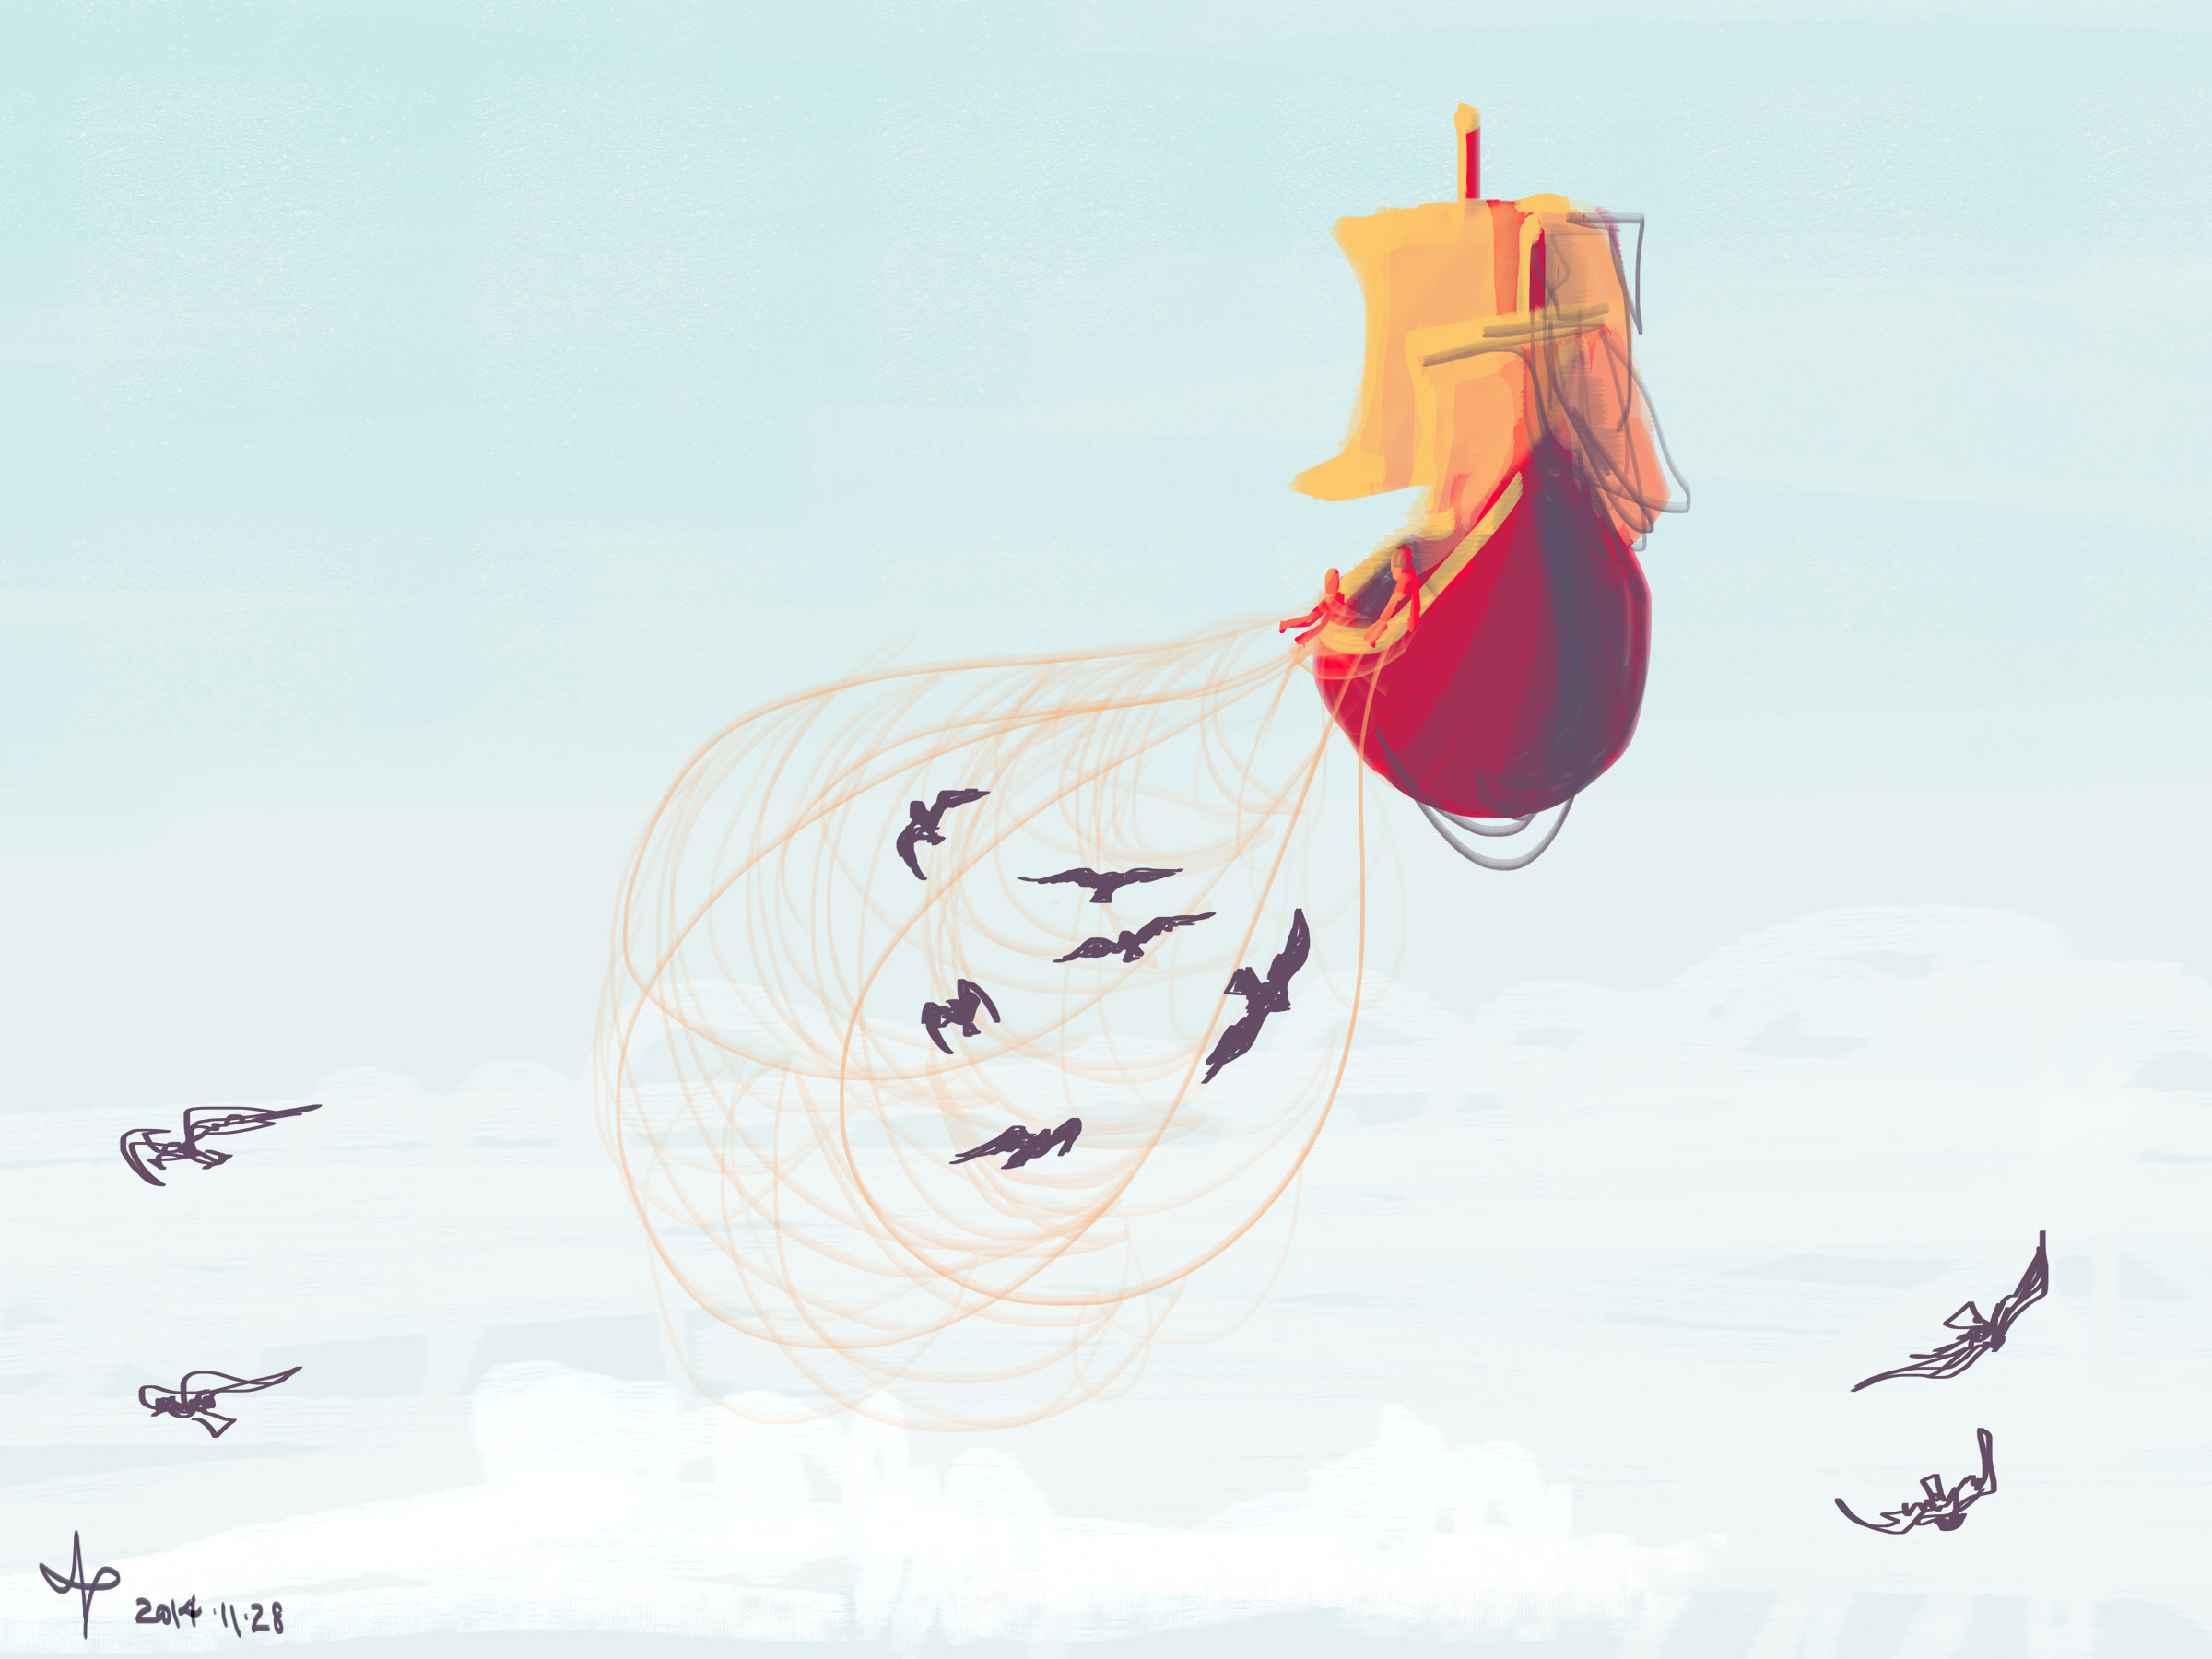 A digital painting of a flying pirate ship throwing a net out to catch crows.